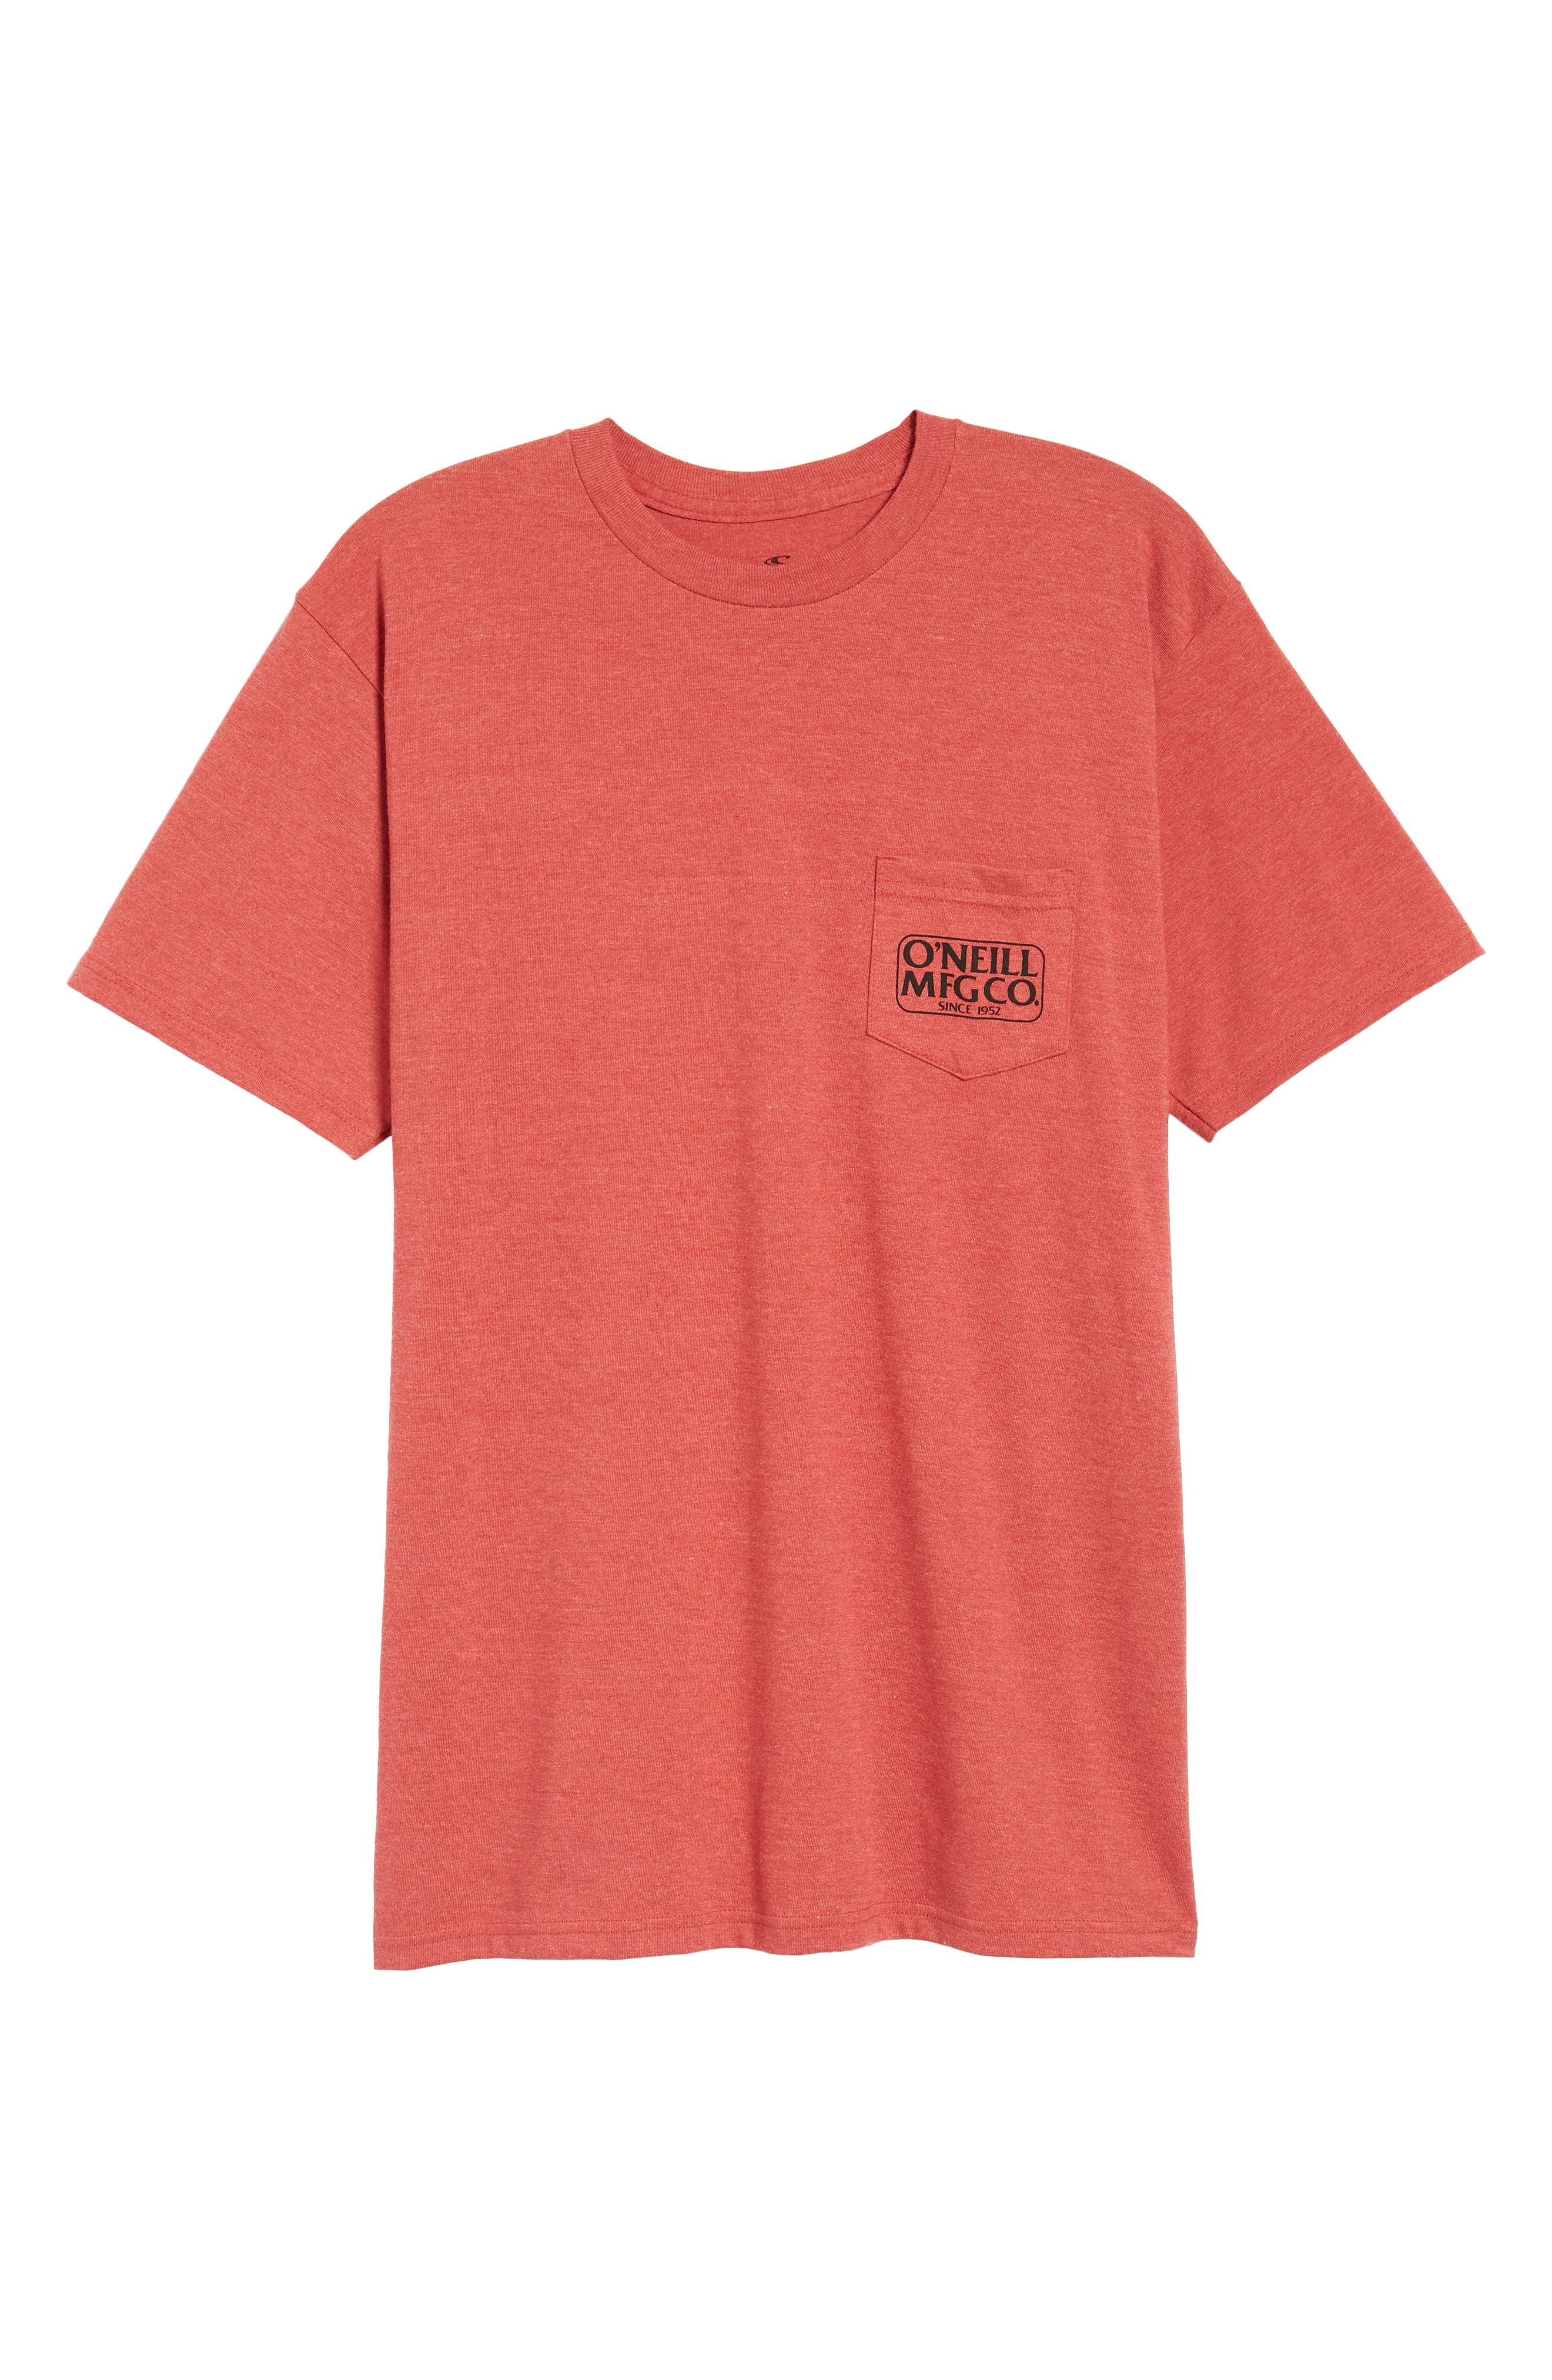 MFG Graphic T-Shirt,                             Alternate thumbnail 6, color,                             Red Heather